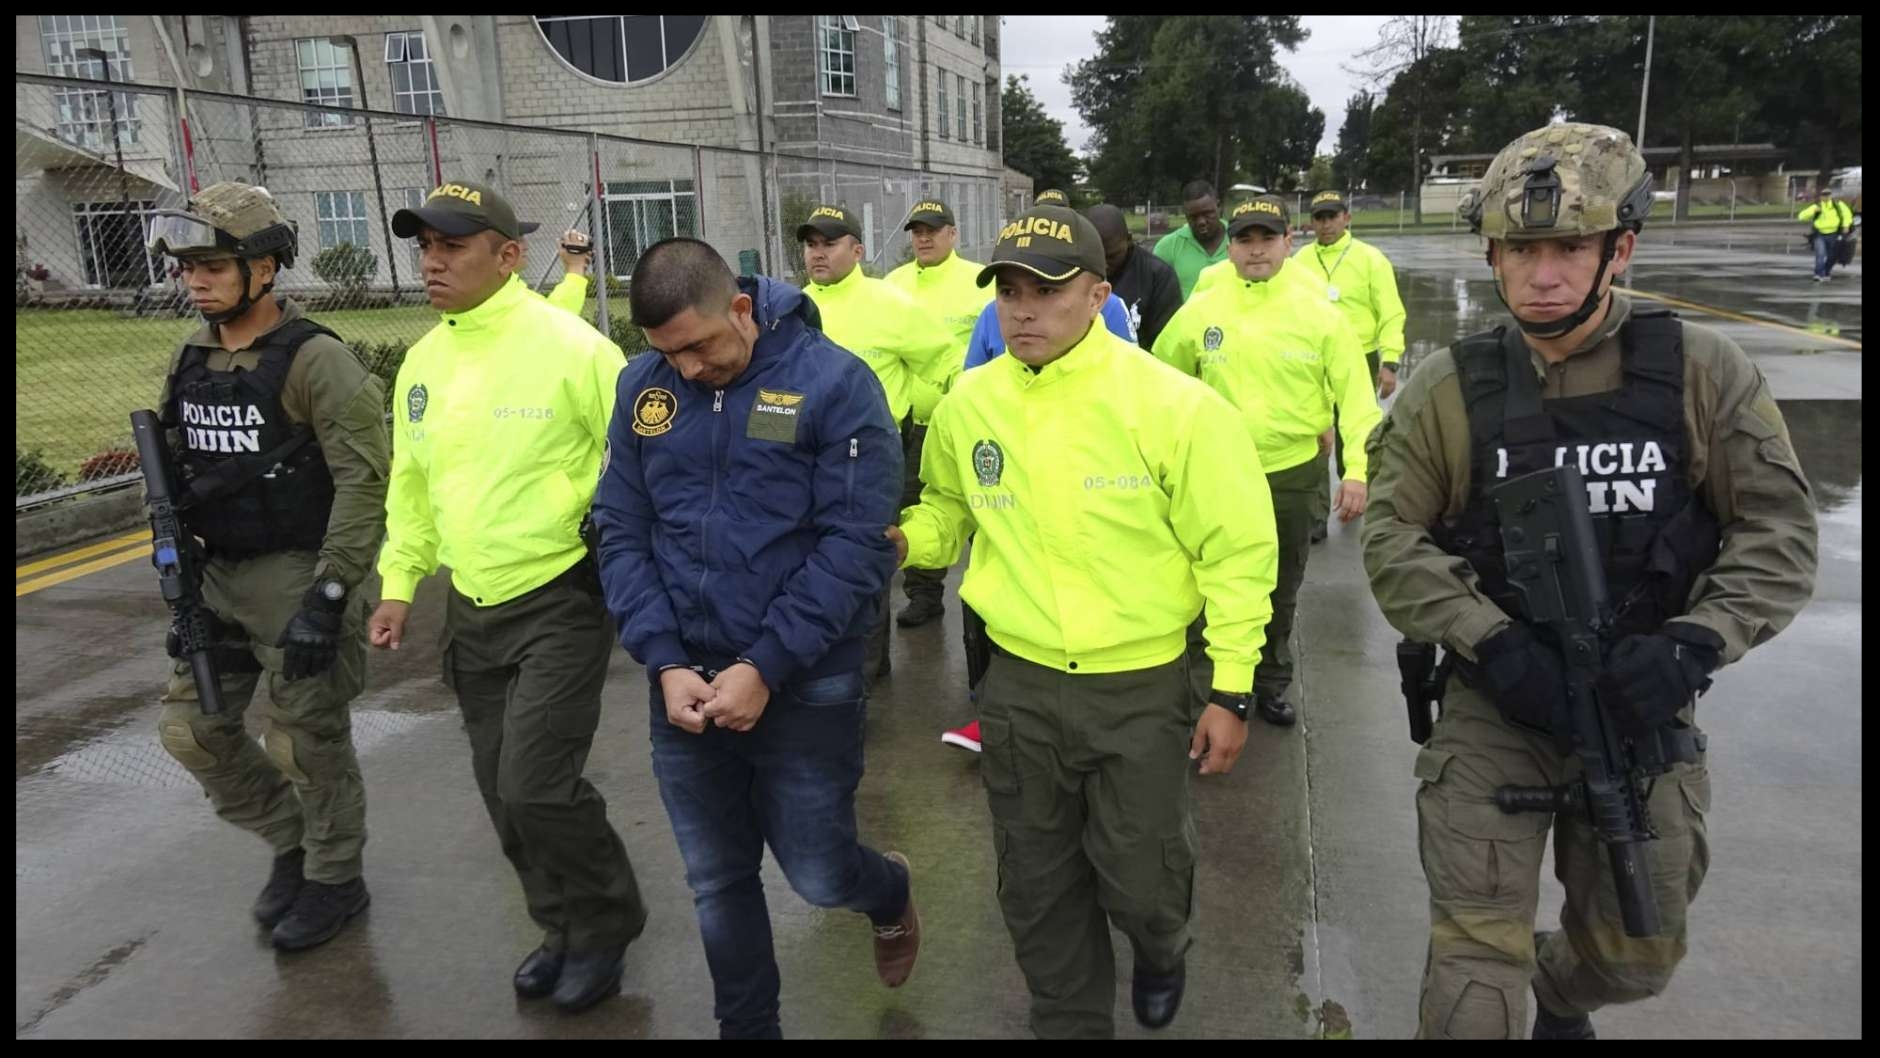 This undated photo released by Colombia's National Police show officers escorting a man who police identify as Ecuadorean drug trafficker Edison Prado after his April 2017 arrest on an indictment by a Florida federal court. A few months after his arrest in a DEA-organized raid, Prado showed up on a list with more than 20 others suspected traffickers wanted for extradition by the U.S. who rebels of the Revolutionary Armed Forces of Colombia, FARC, claimed as jailed members of their now-disbanded insurgency even though they have no known history of rebellion.  (Colombia National Police via AP)